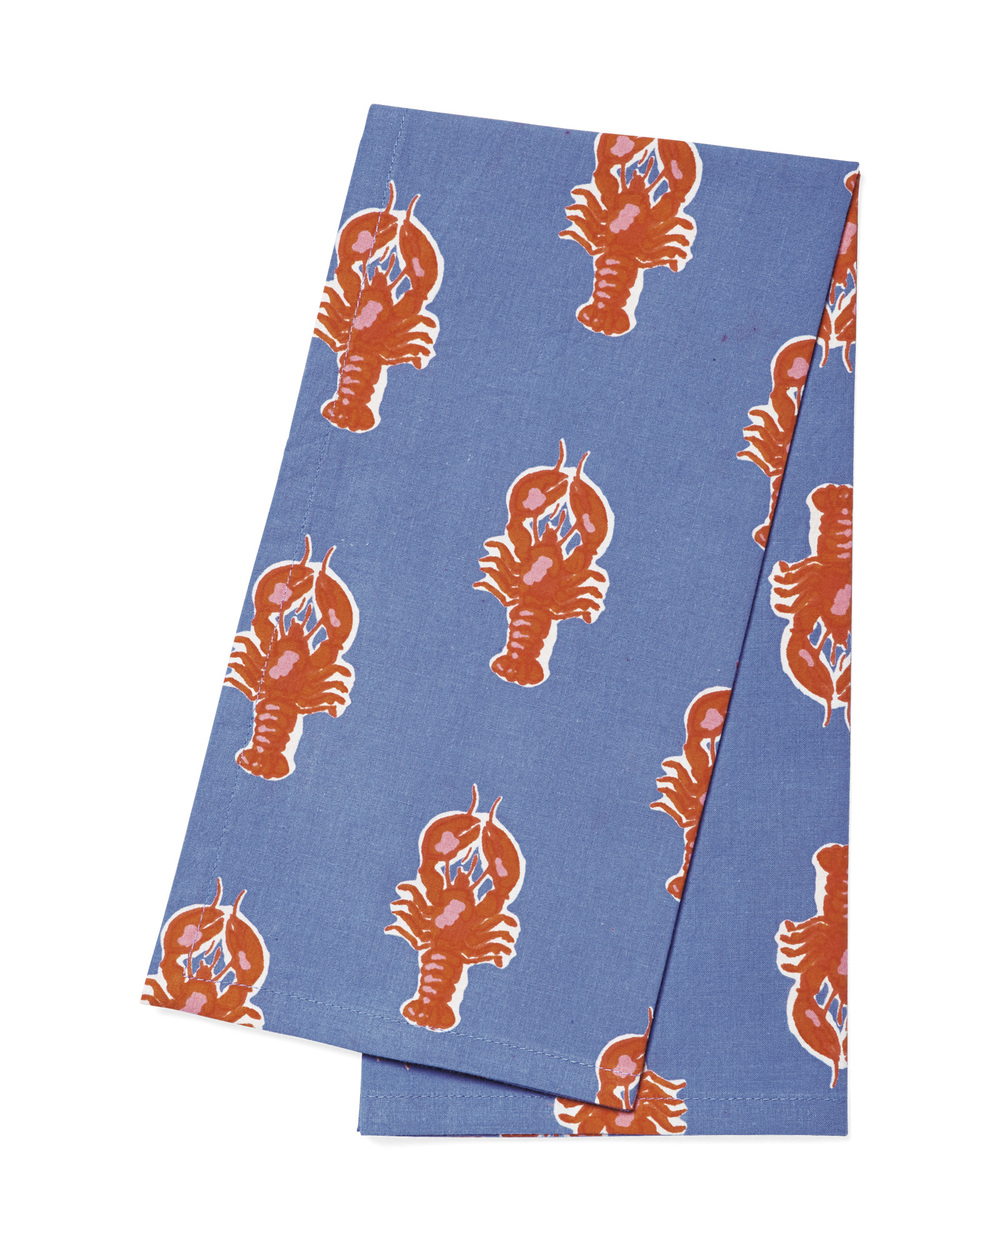 Lobster Napkins - Serena & Lily